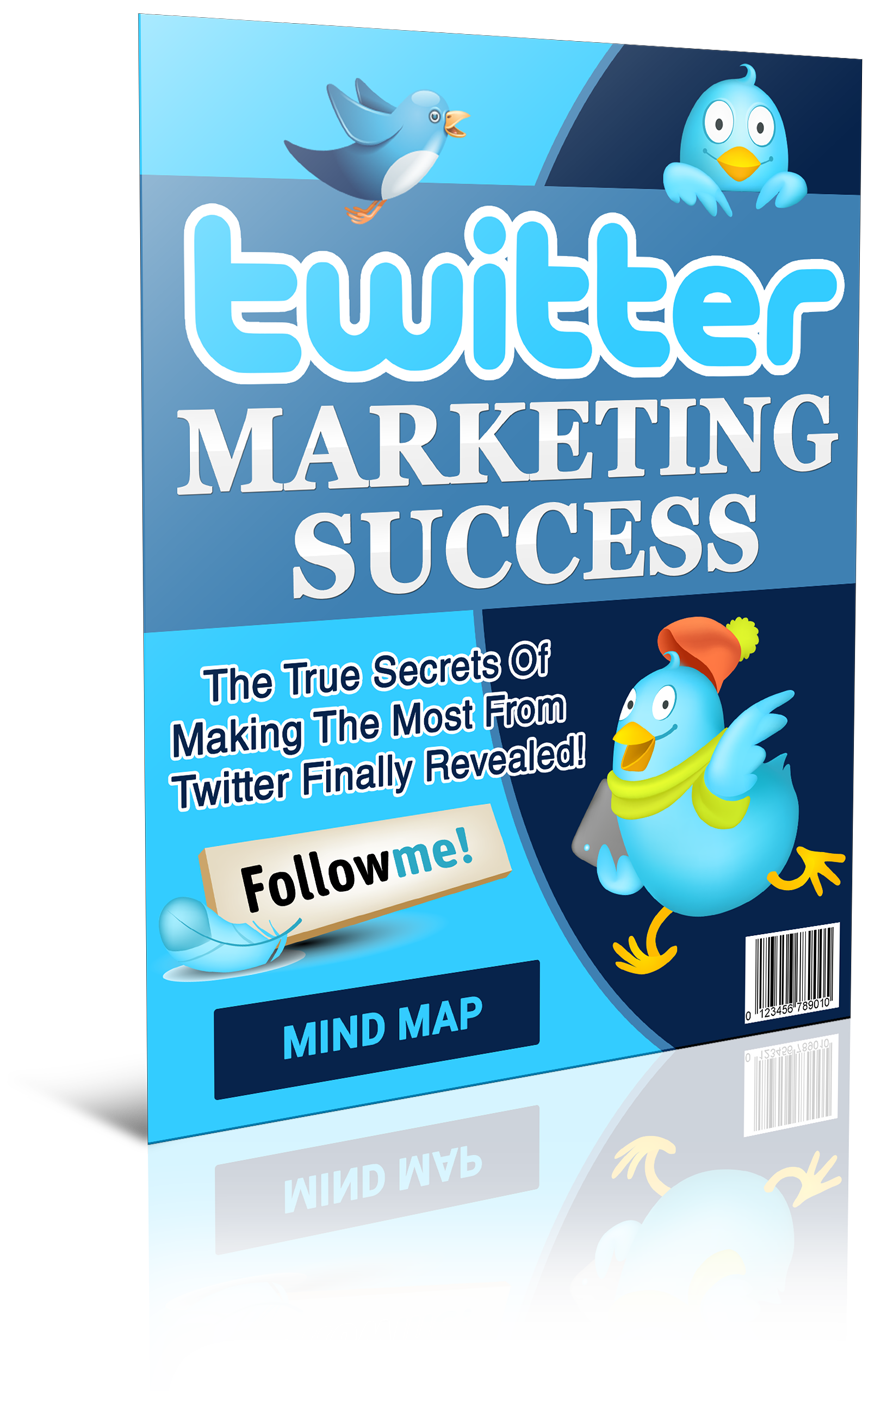 Twitter Marketing Success Mindmap